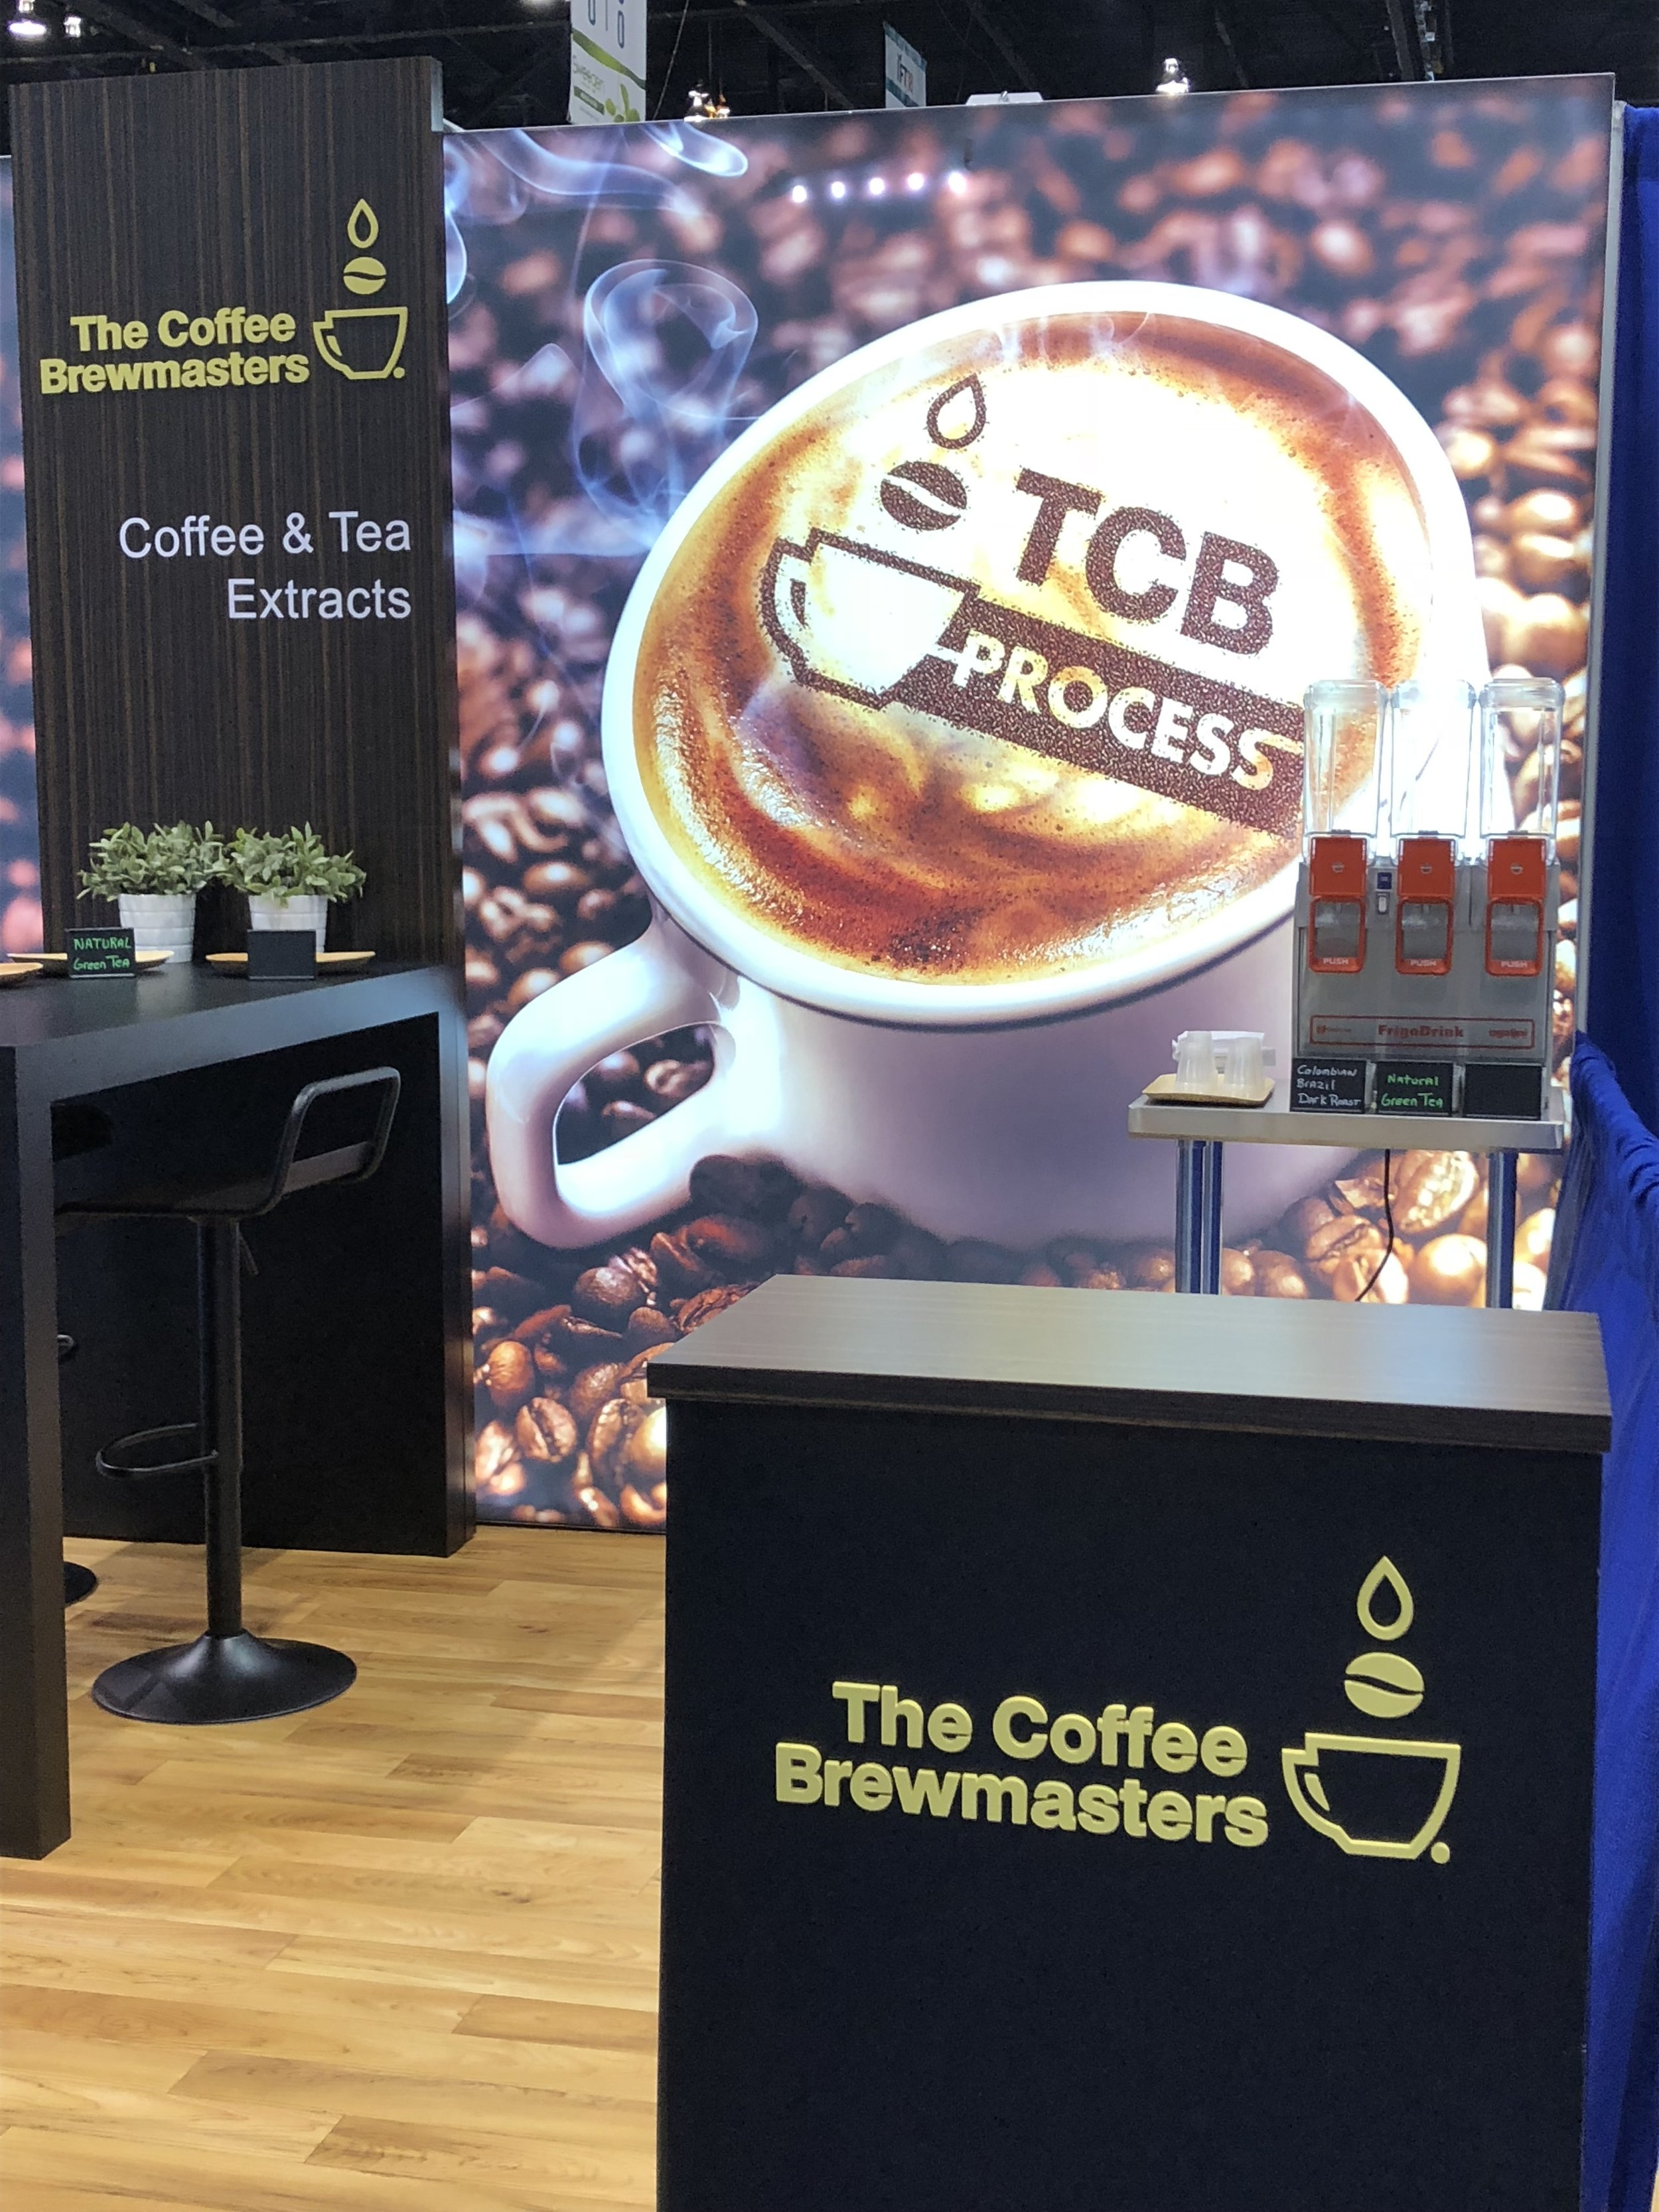 And here we are! - Hope you will stop by our booth over the coming days to try out our Coffee and Tea Extracts and to discuss your requirements.Stand N6713